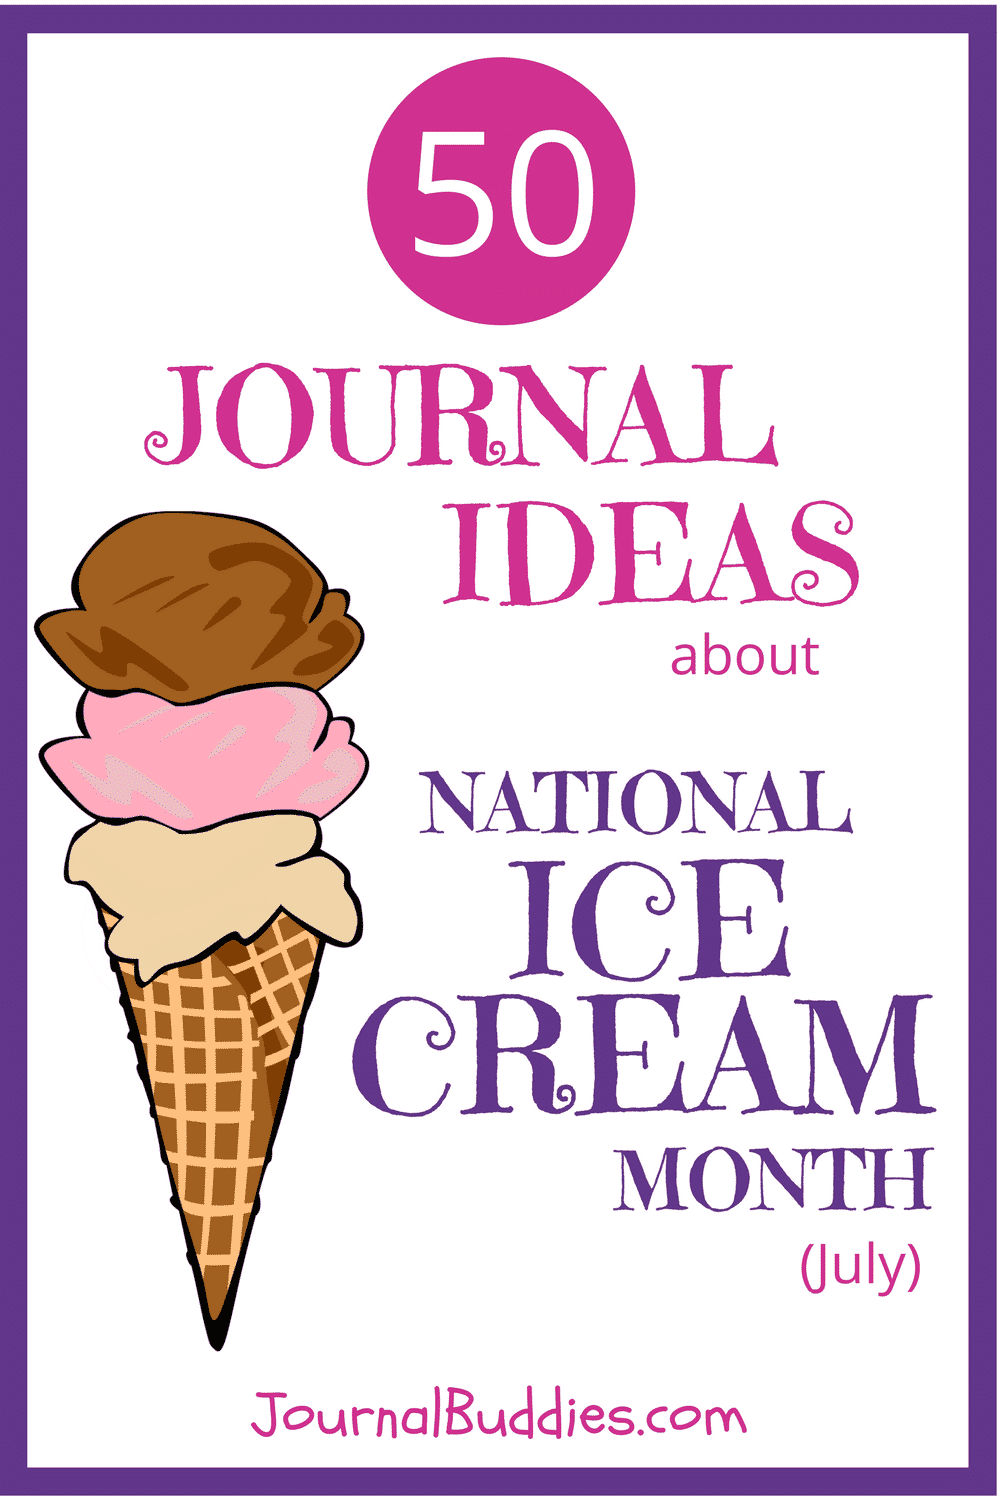 Get students ready for National Ice Cream Month this July with these creative questions. Their answers are likely to come in even more flavors than the local ice cream shop carries!